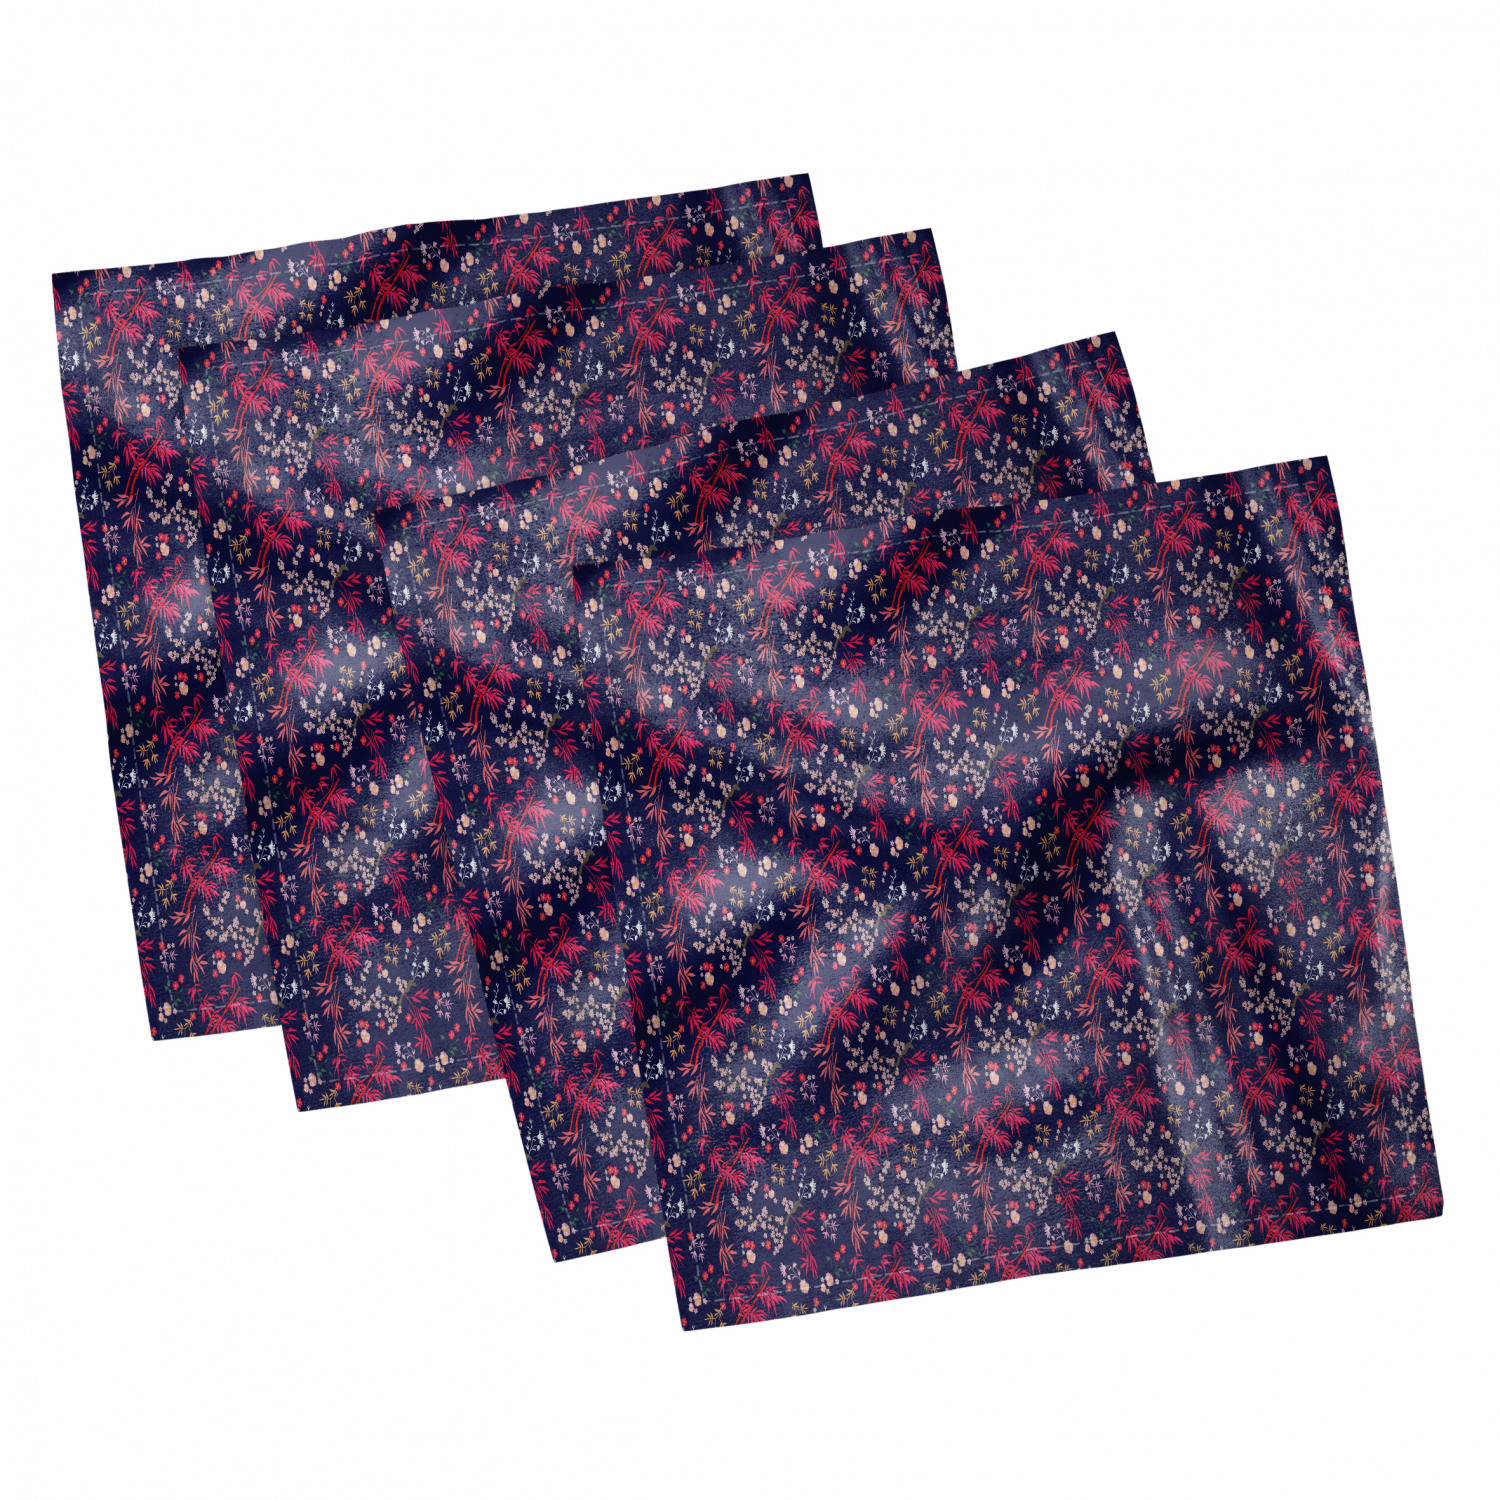 thumbnail 9 - Ambesonne-Leaves-Forest-Decorative-Satin-Napkins-Set-of-4-Party-Dinner-Fabric